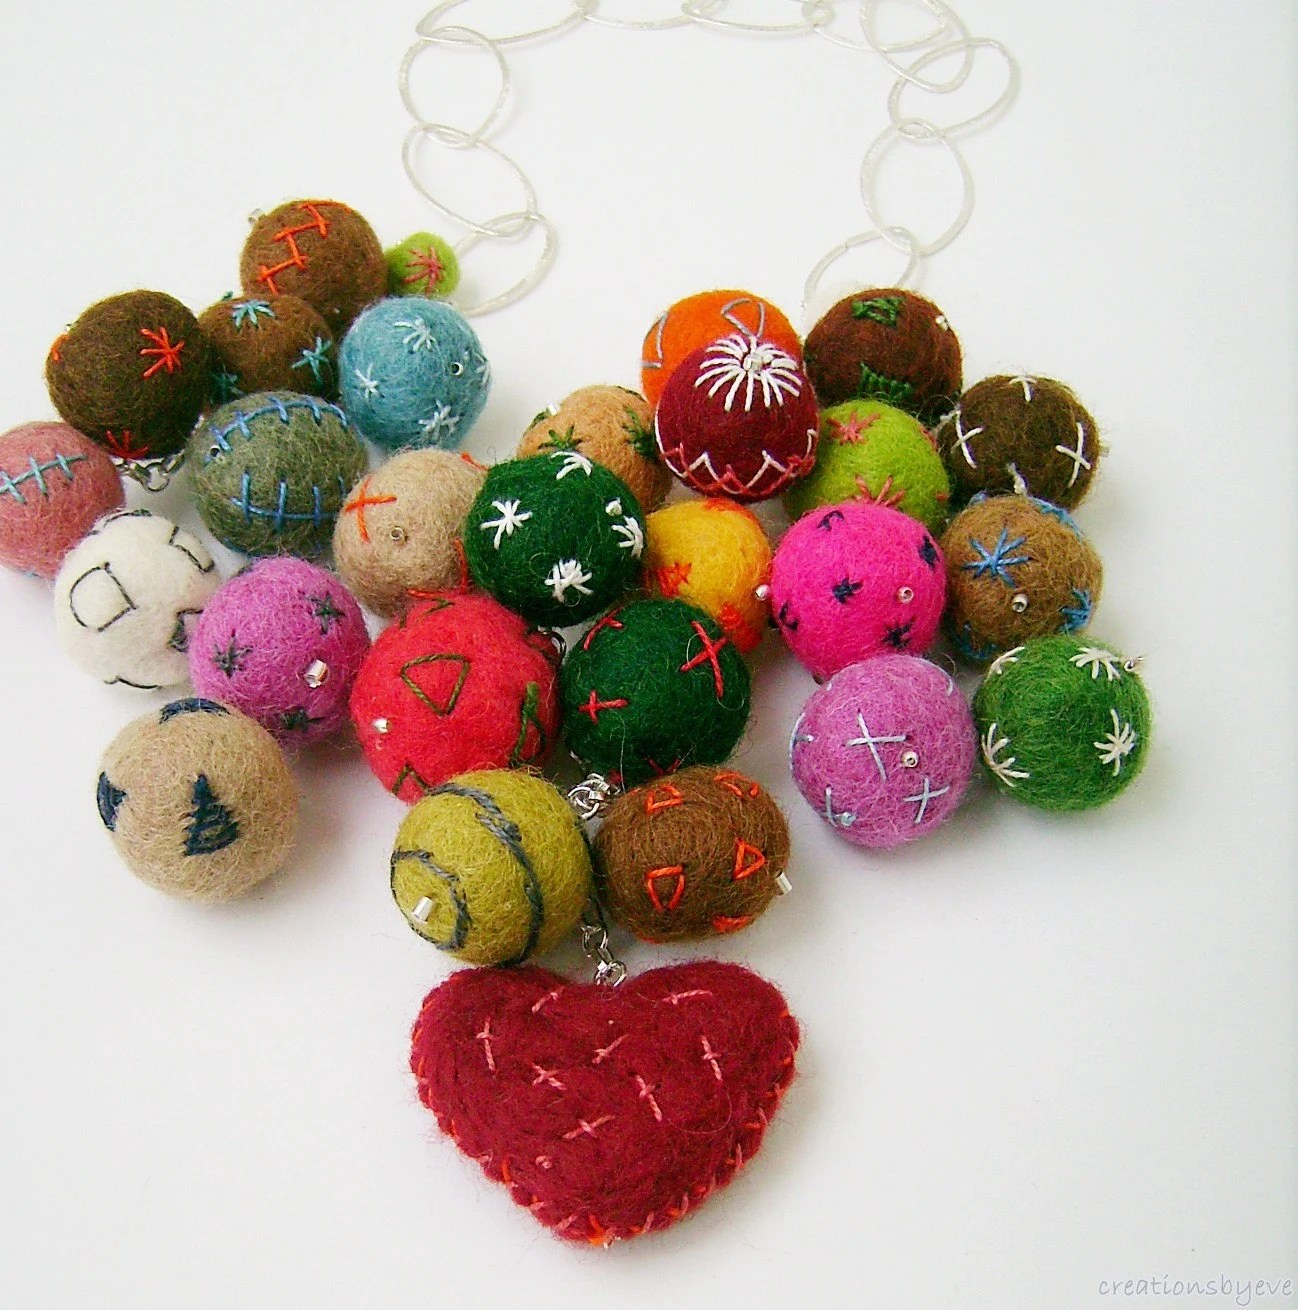 statement necklace with colorful felt beads